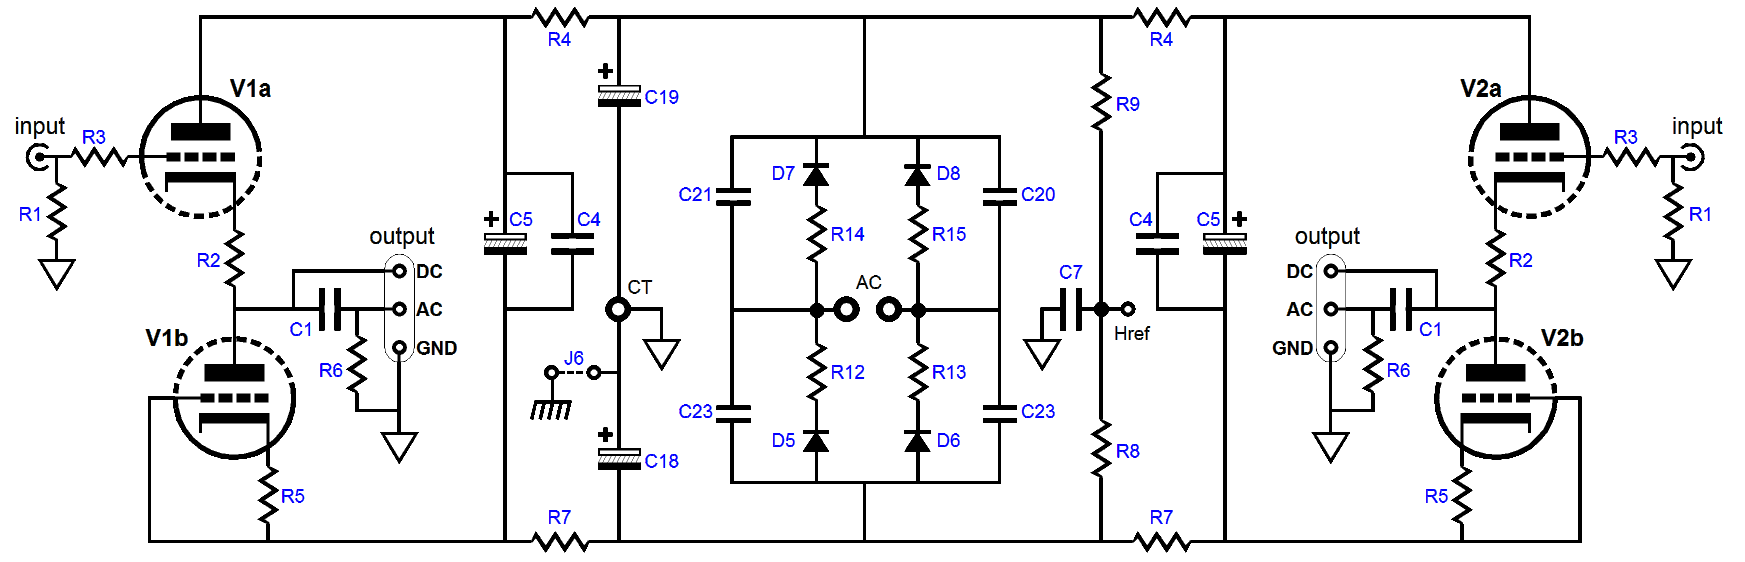 Aikido Cathode Follower 2 Impedance Multiplier Circuits And The Ps 6 Way Crossover Active Circuit Both Channels Bipolar High Voltage Power Supply Are Shown In Above Schematic Acf Uses A Two Triodes Per Channel